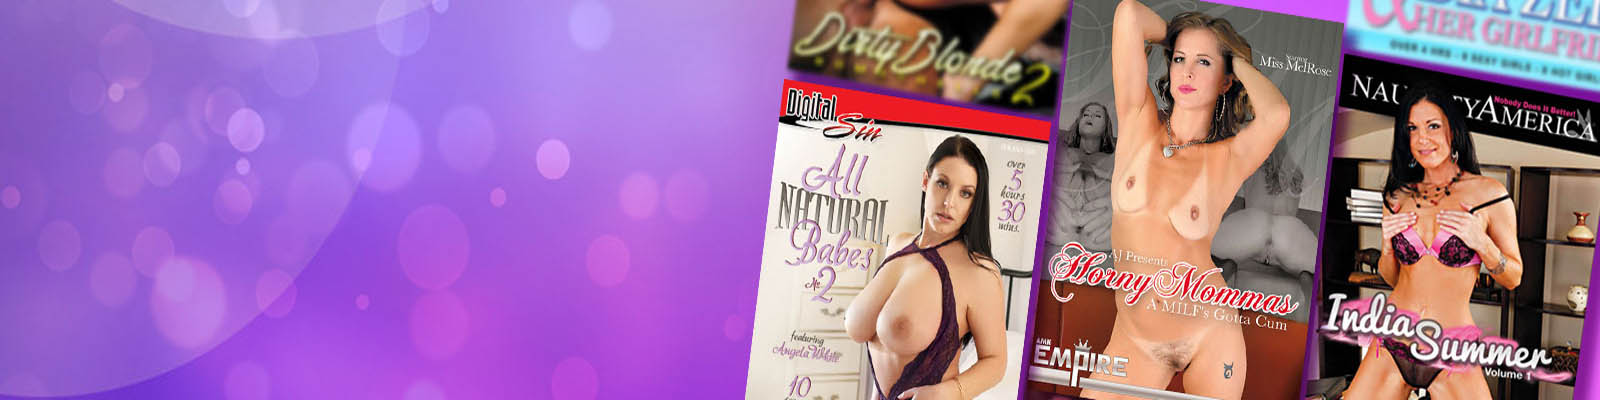 Discreet Service & Packaging